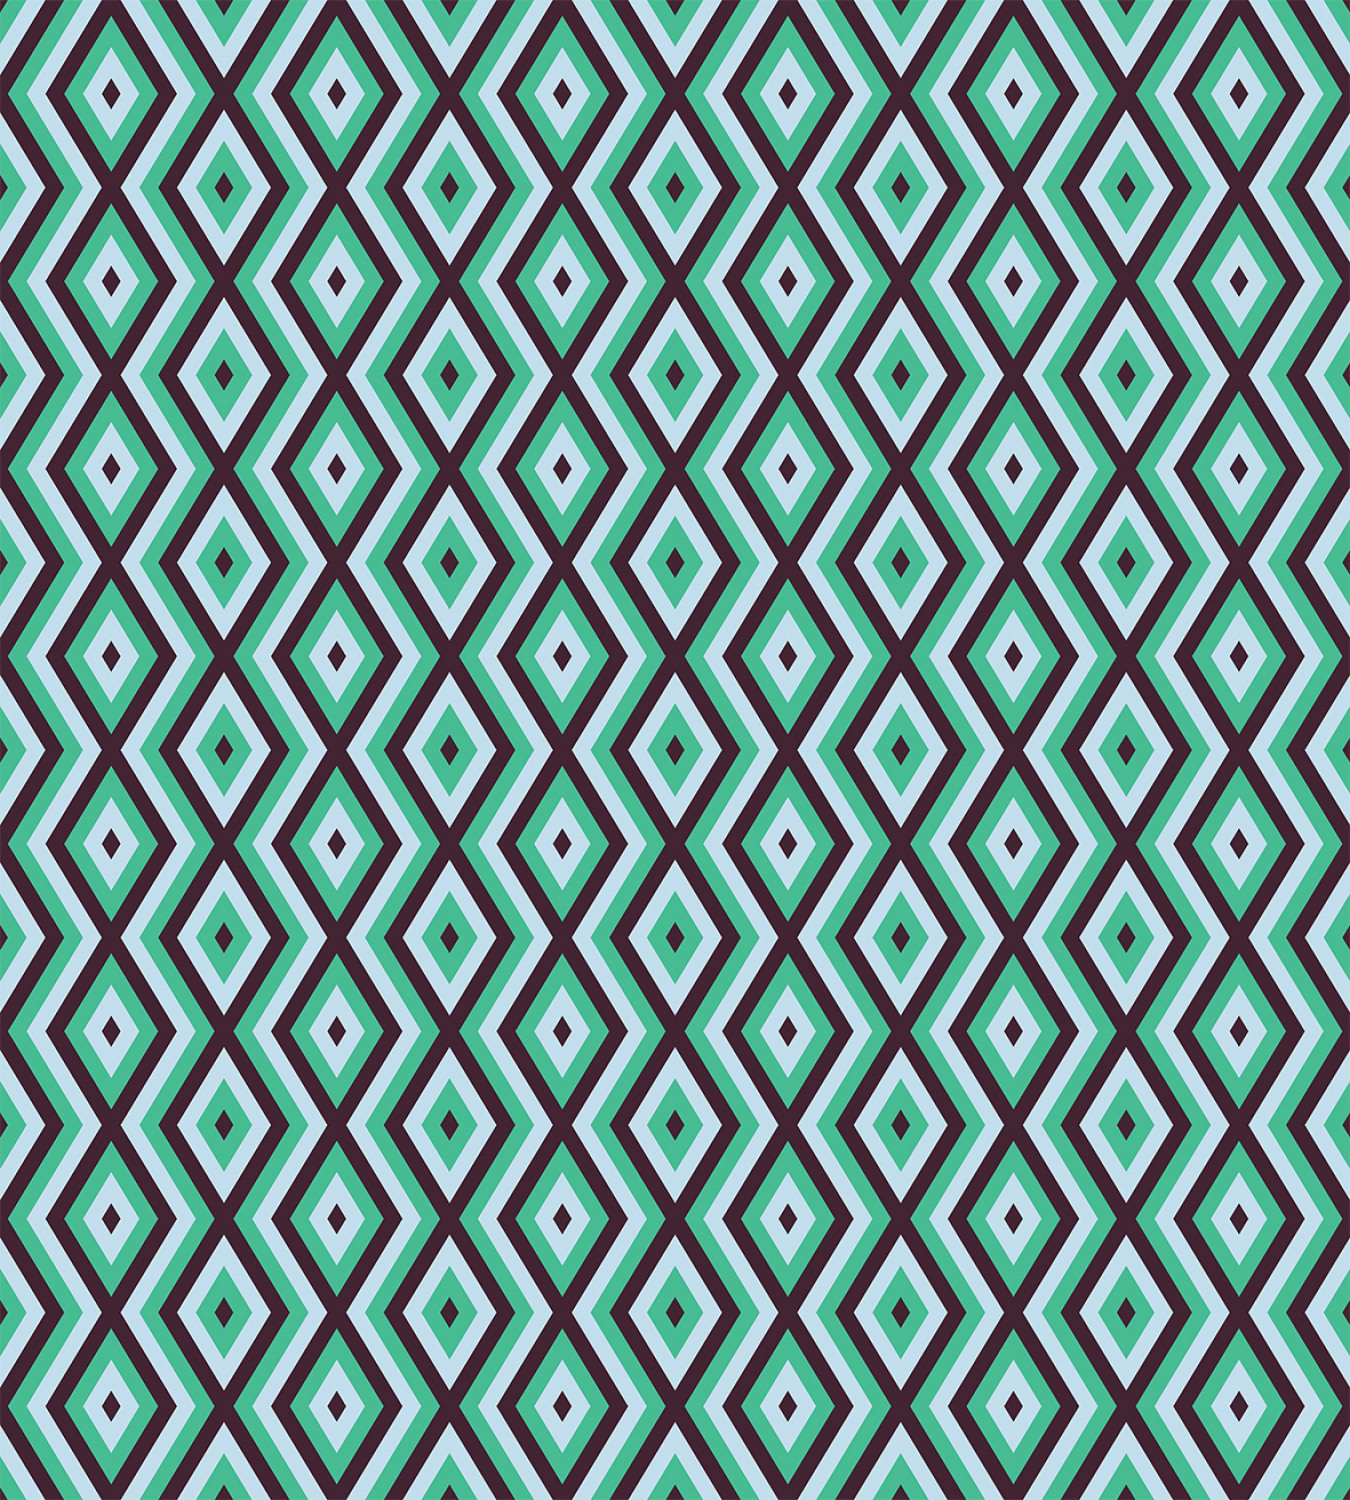 Teal-and-White-Duvet-Cover-Set-Twin-Queen-King-Sizes-with-Pillow-Shams-Ambesonne thumbnail 39